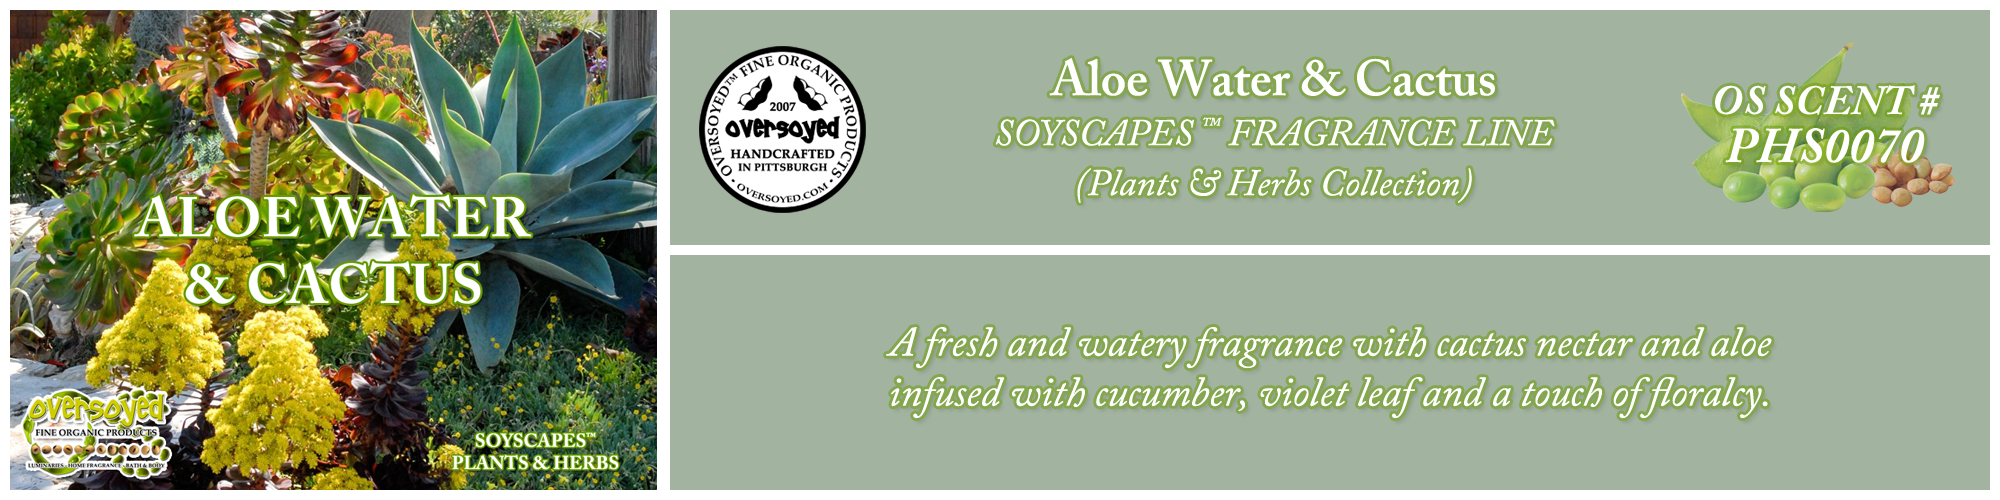 Aloe Water & Cactus Handcrafted Products Collection